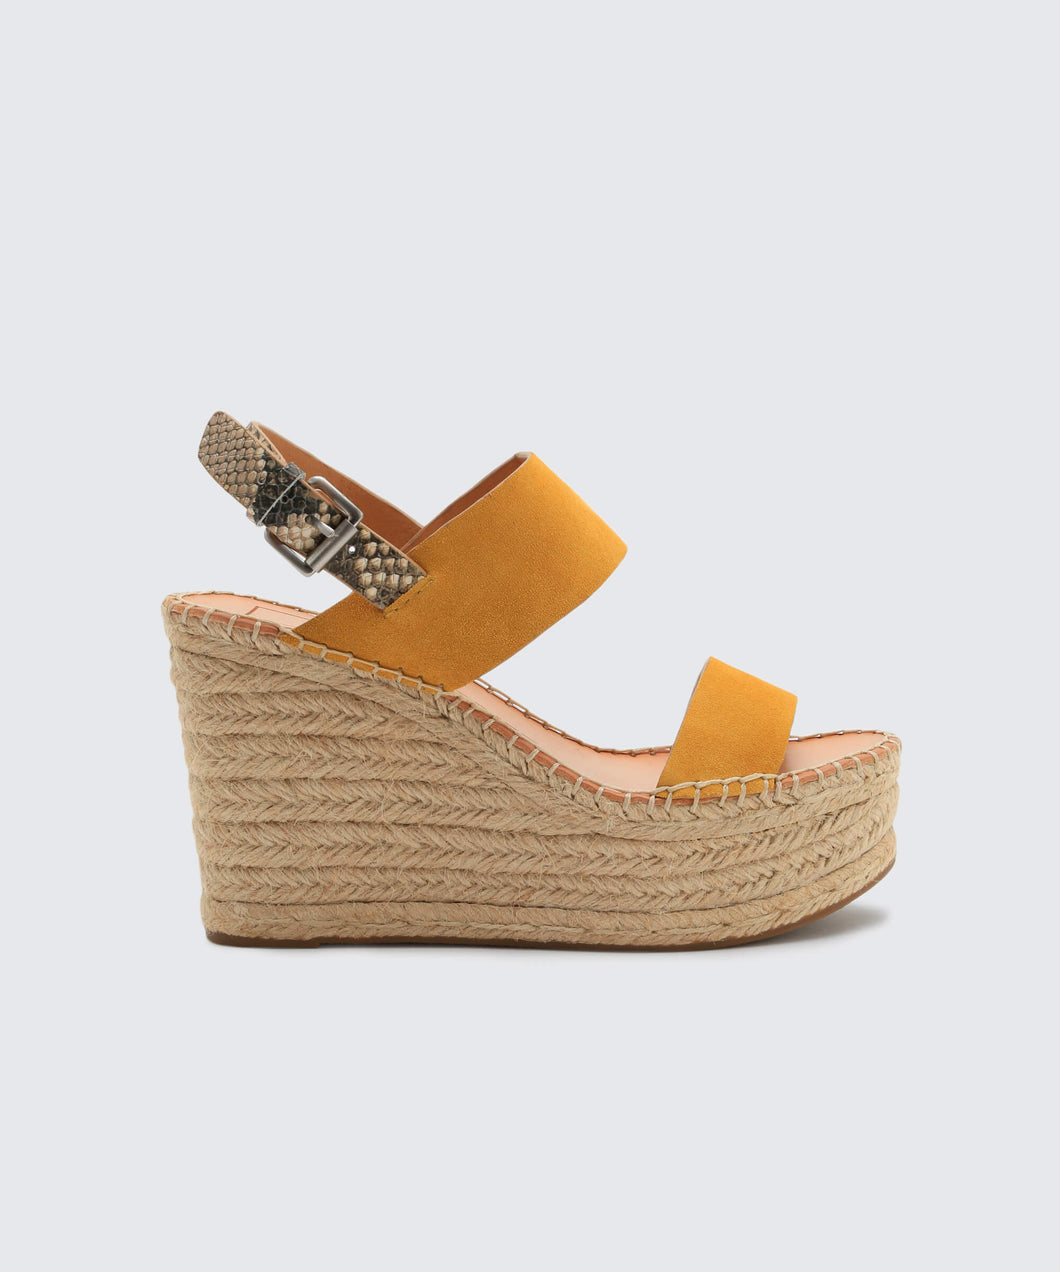 SPIRO WEDGES HONEY -   Dolce Vita